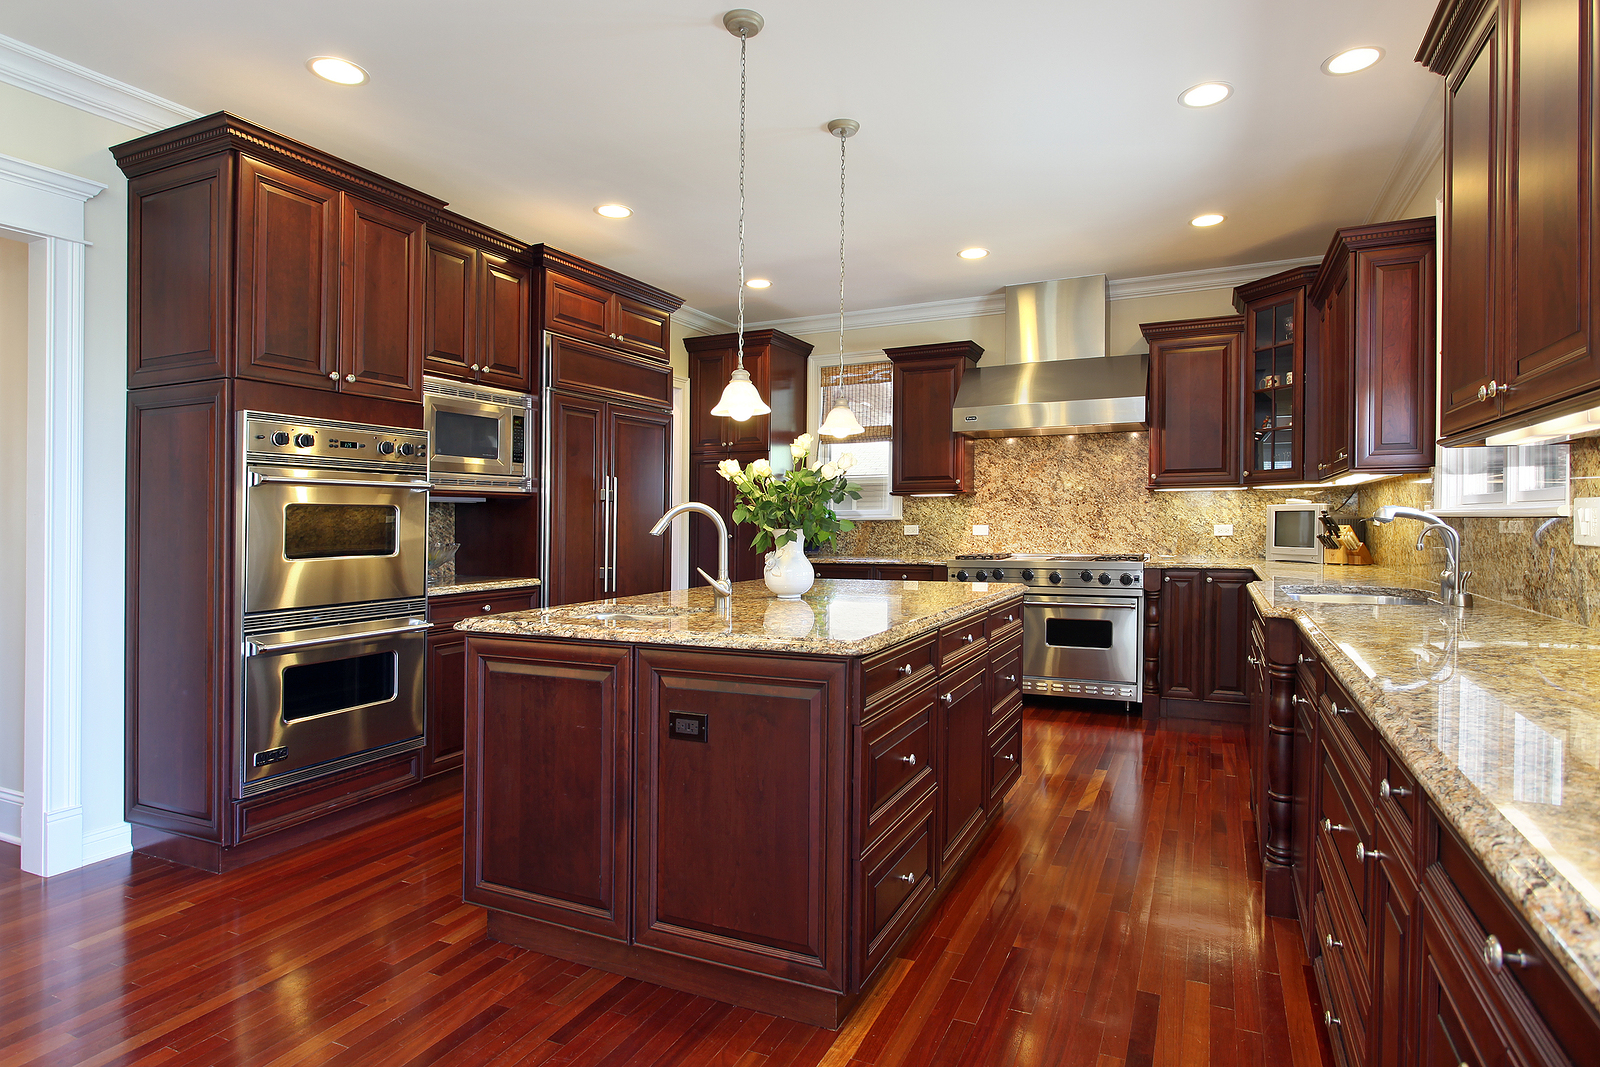 Kitchen in luxury home with cherry wood cabinetry